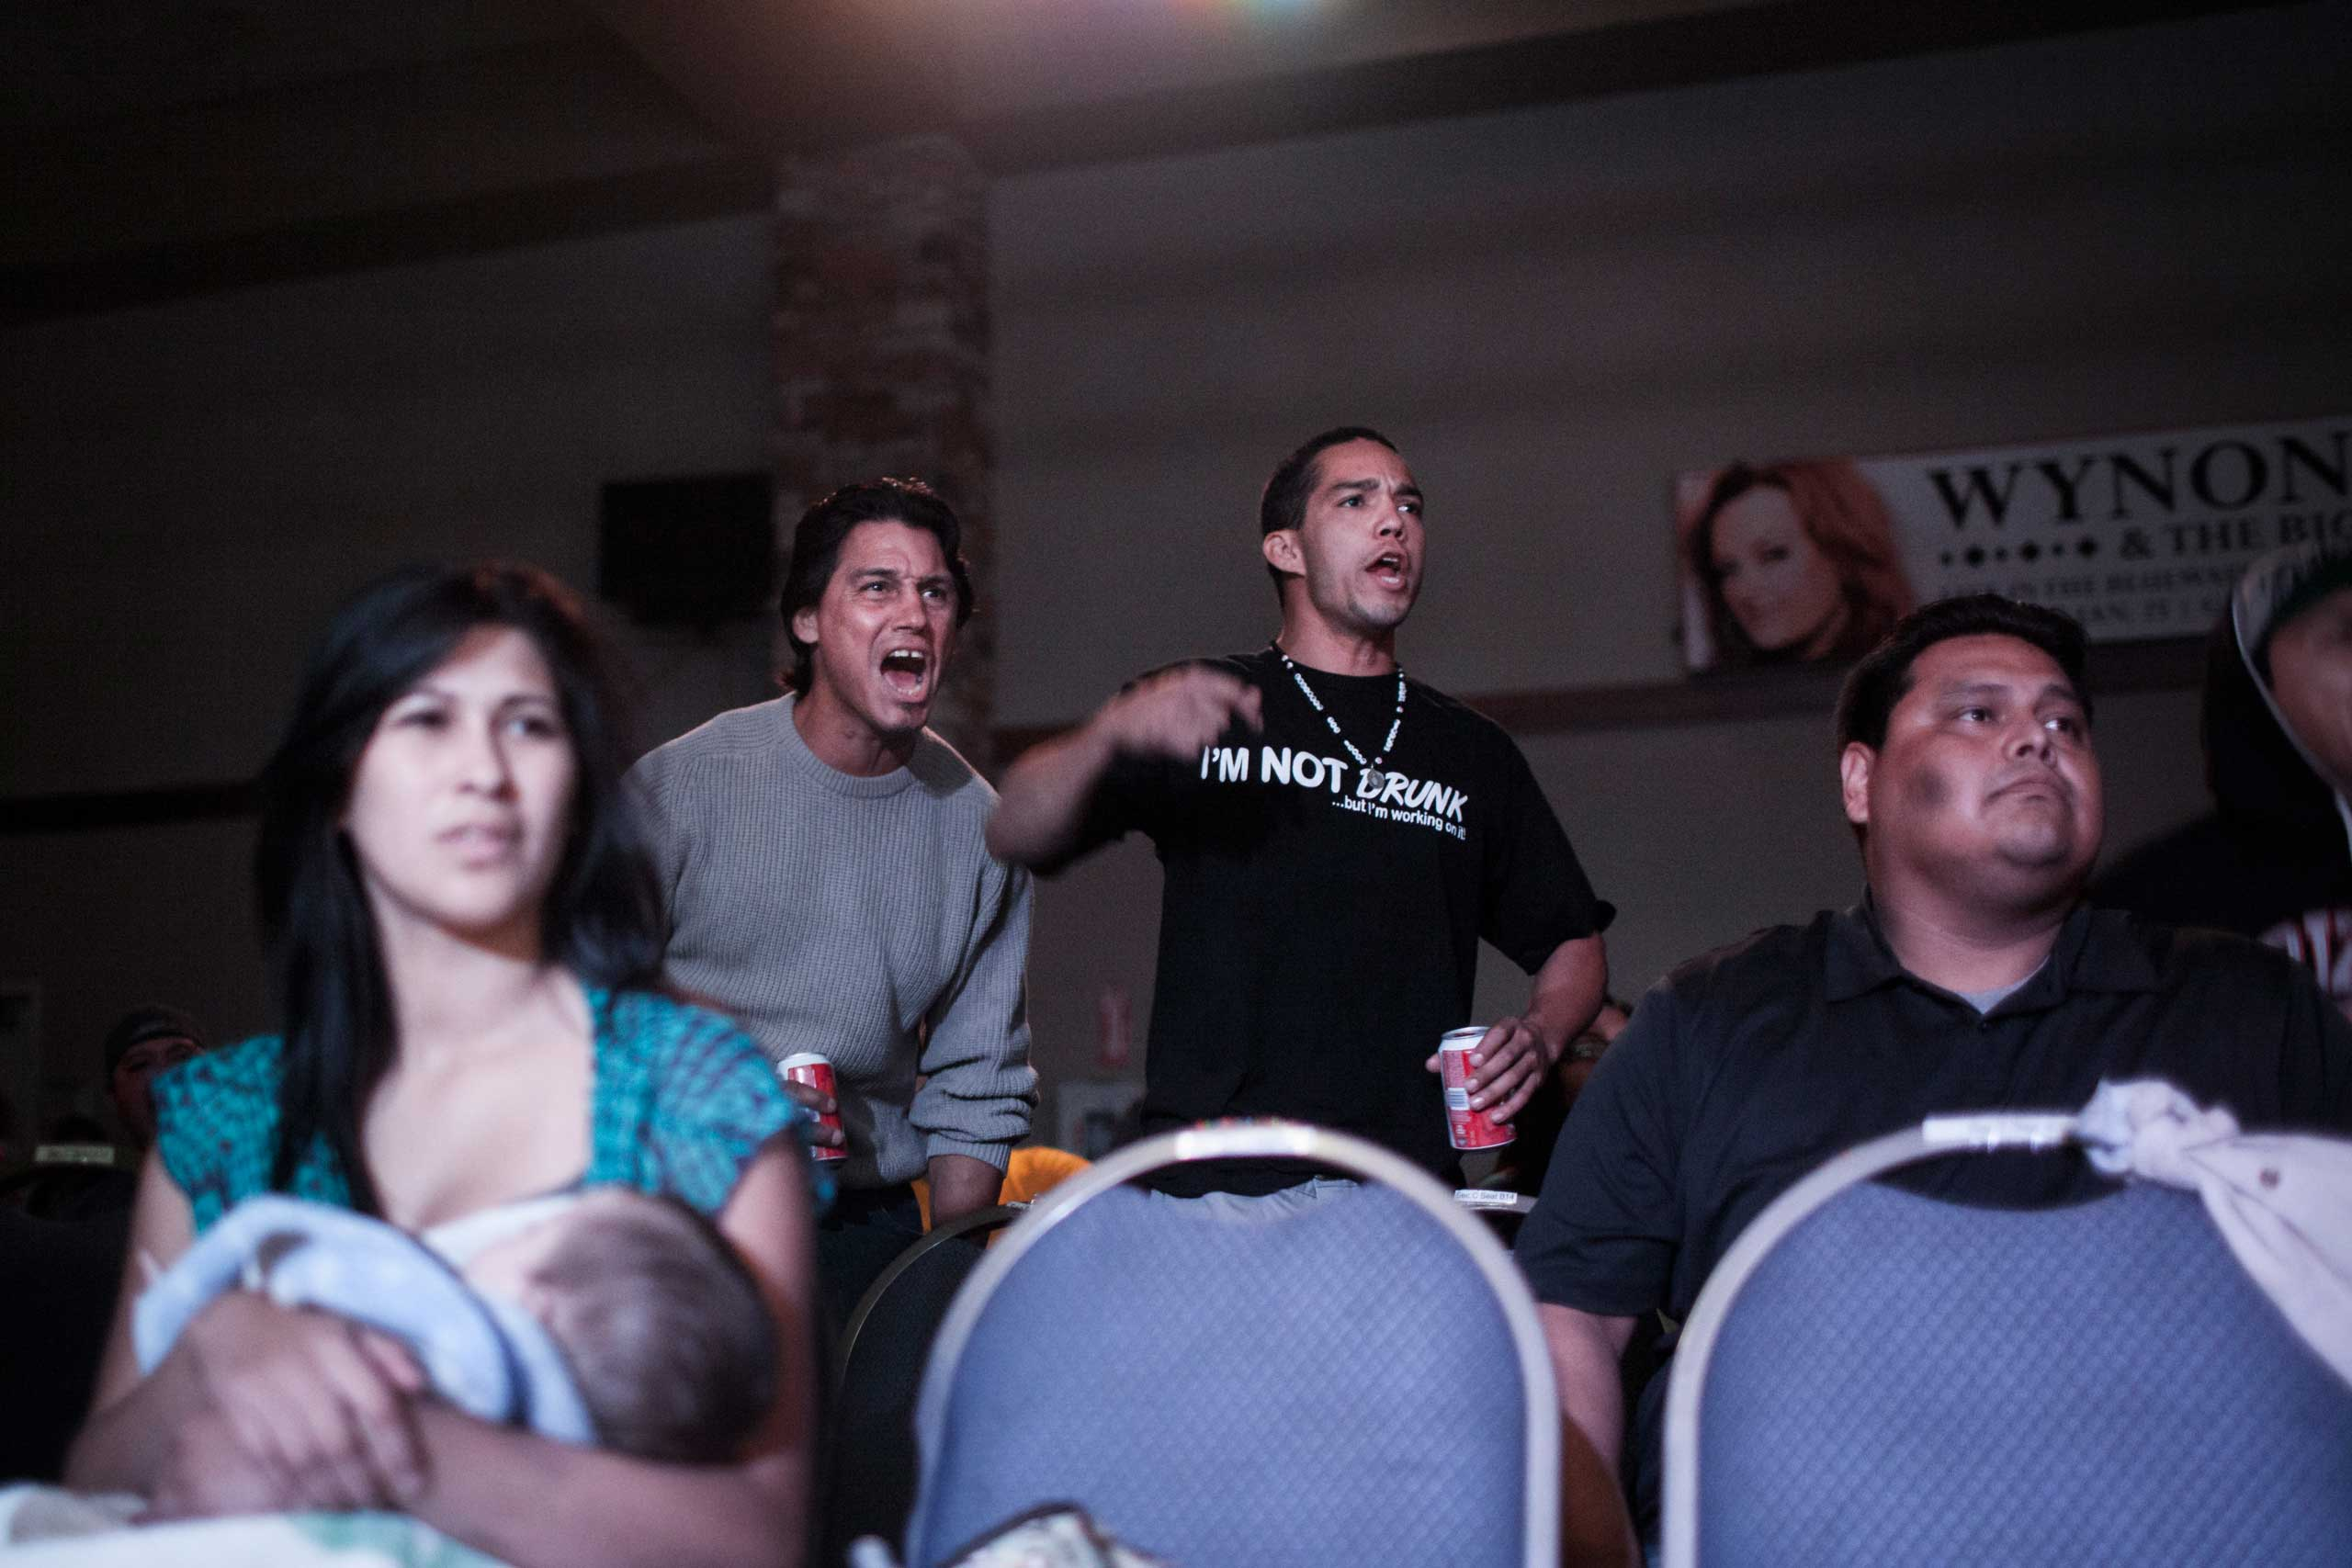 Crowd cheering young mixed martial arts fighters at United States Fight League All-star Pankration show at Blue Water Casino in Parker, Arizona, Oct. 2013.